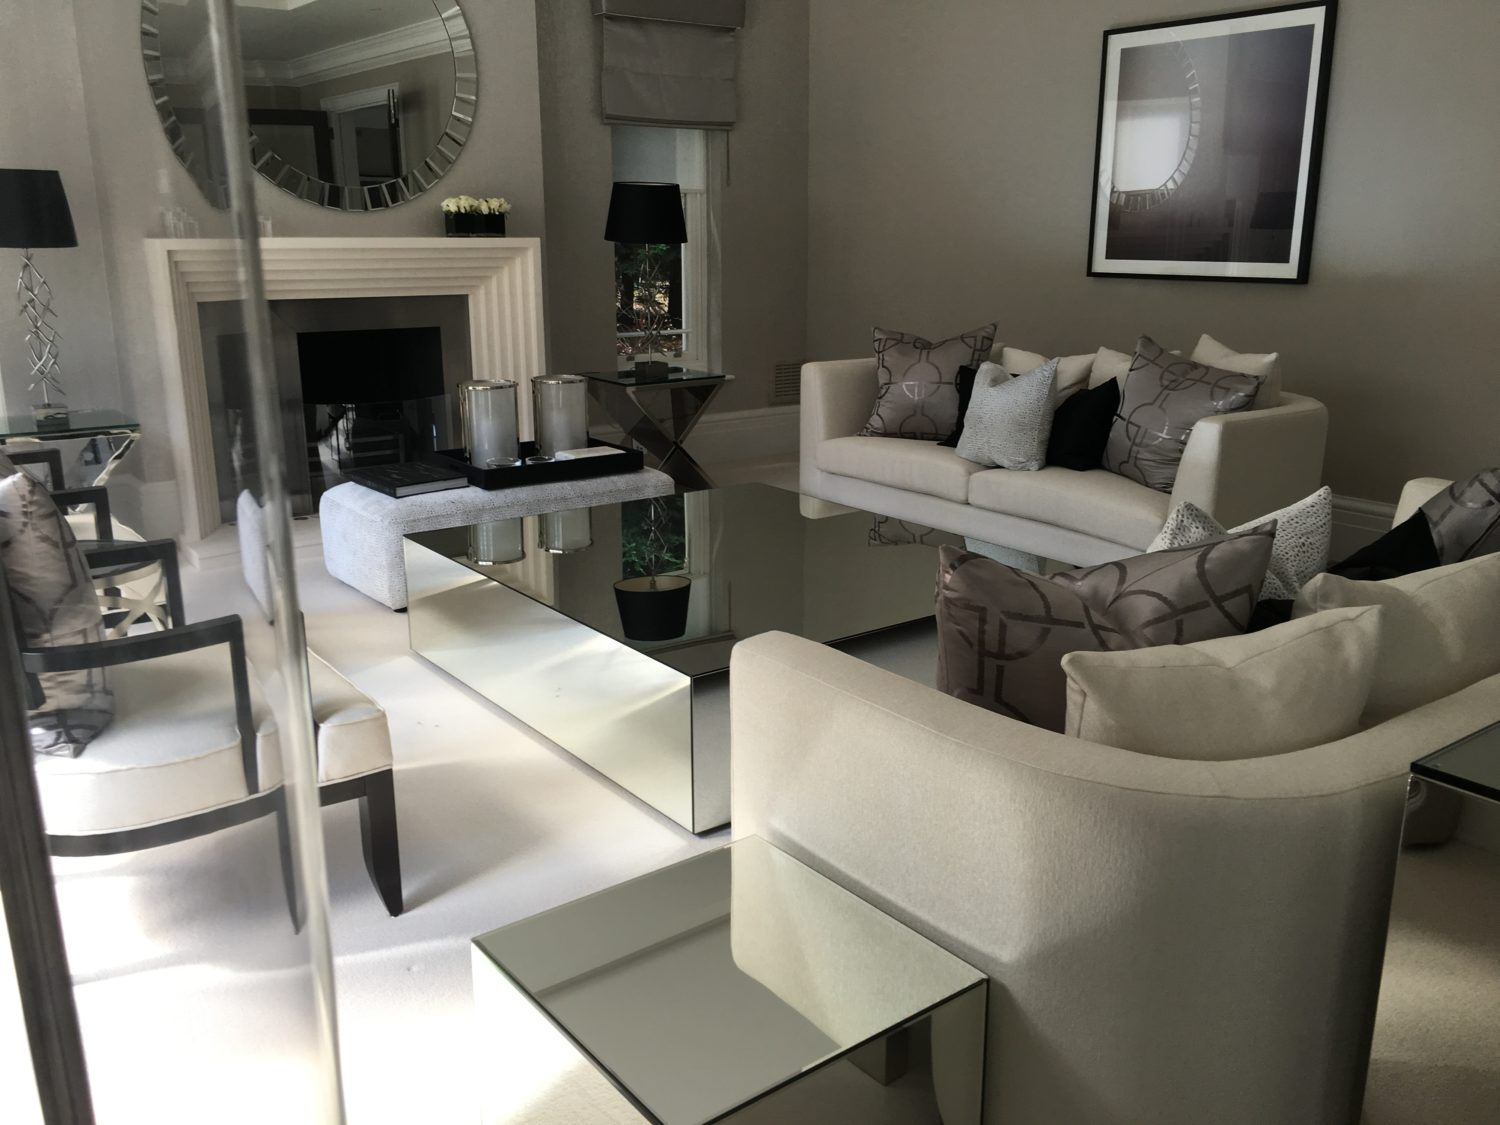 mirrored coffee table and mirroed side table